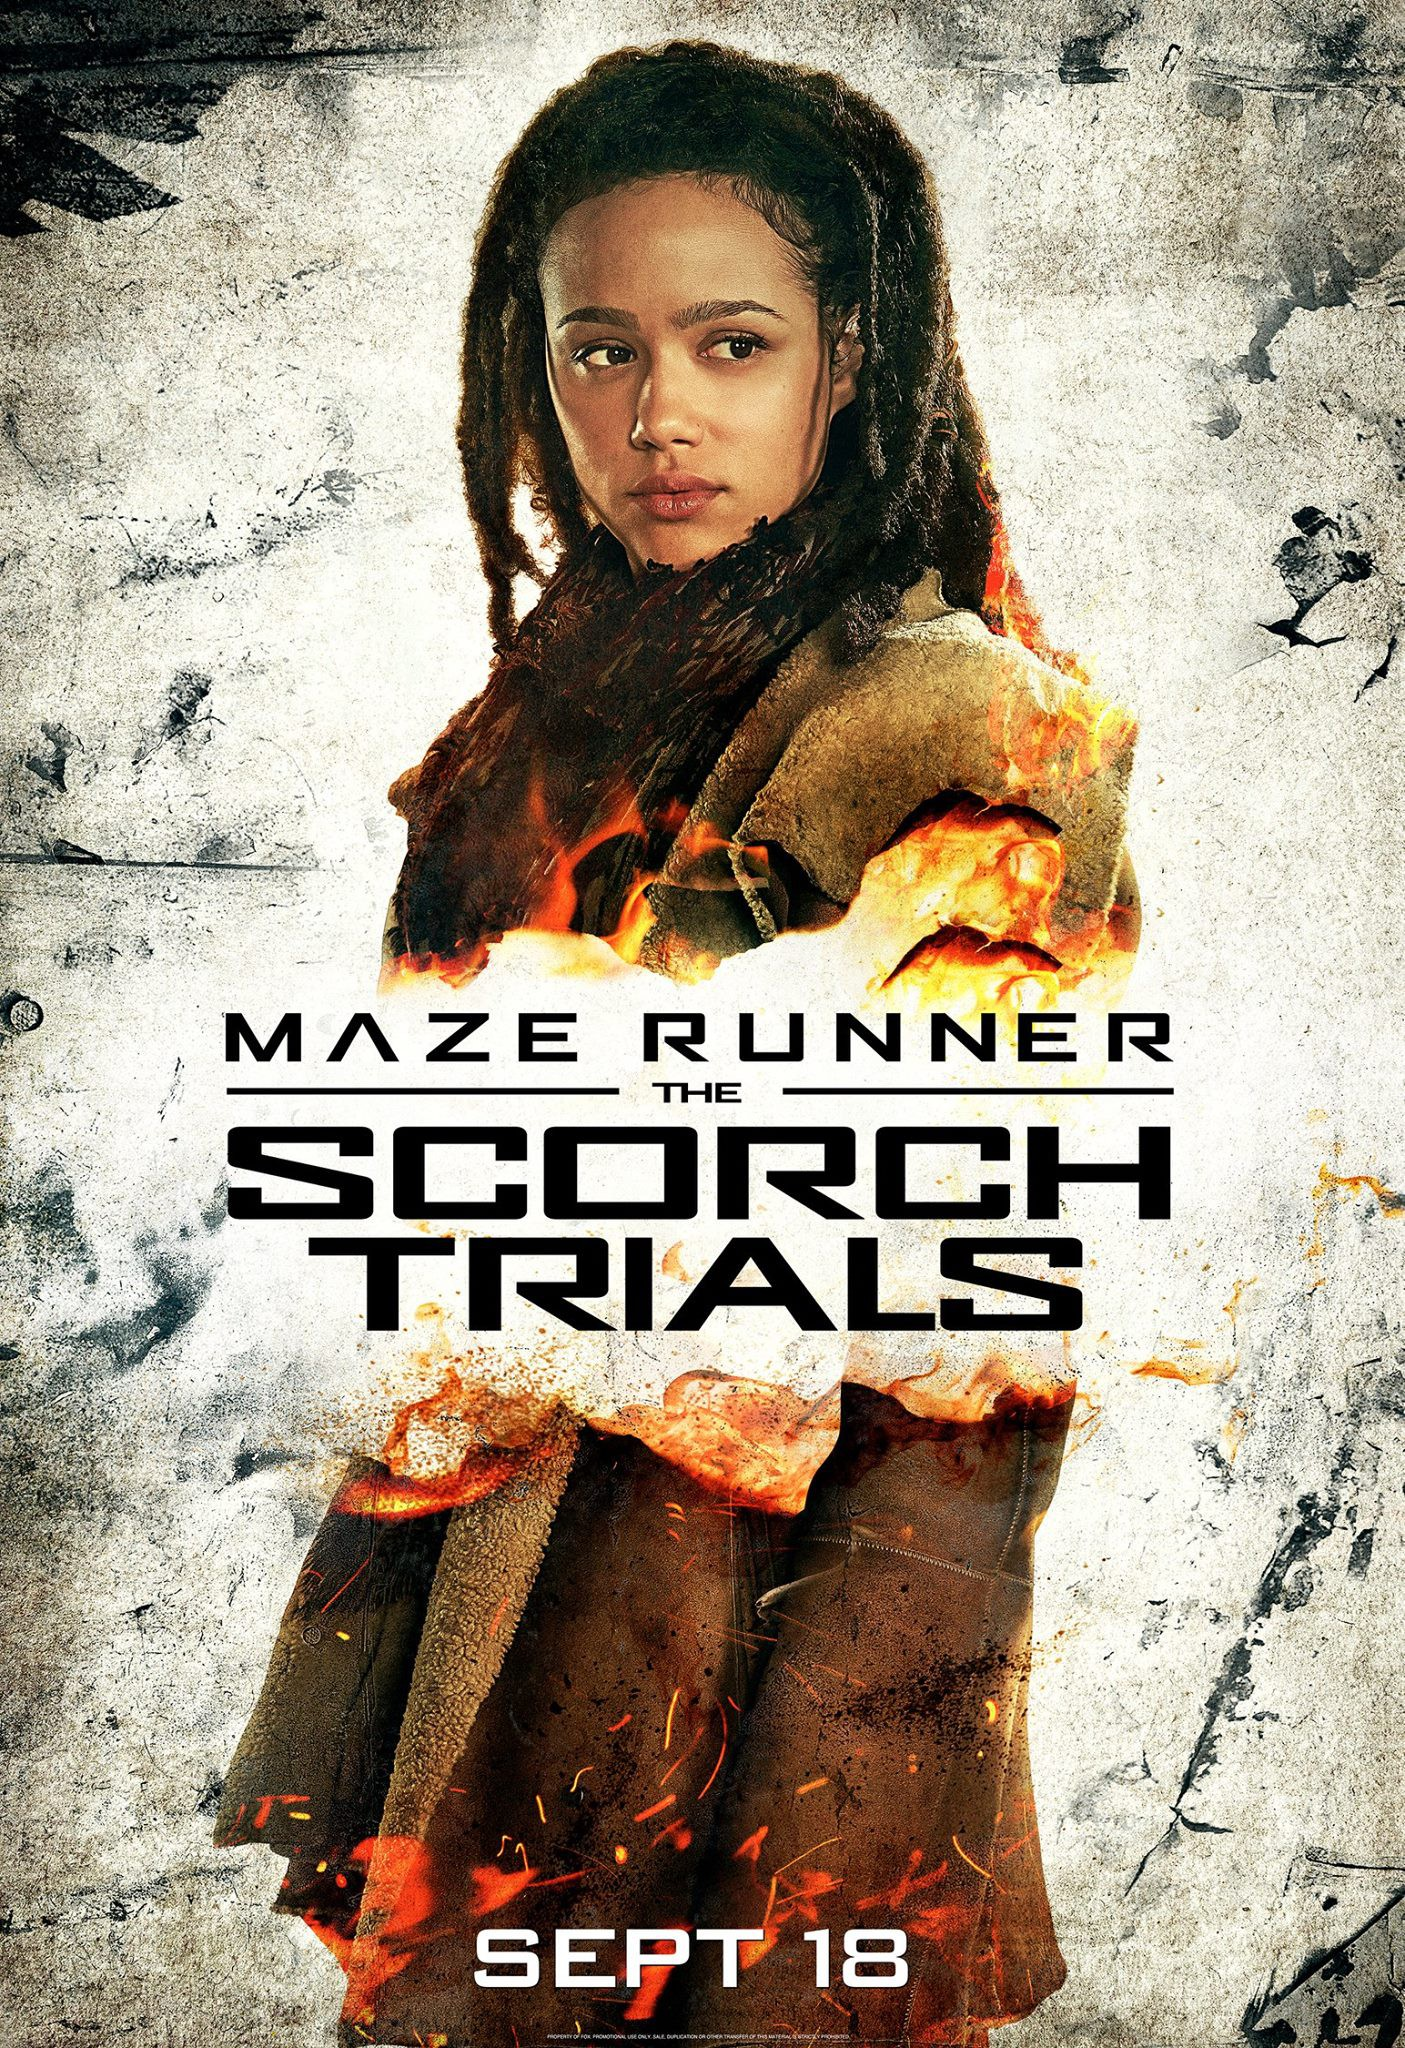 Maze Runner The Scorch Trials-24Julho2015-03